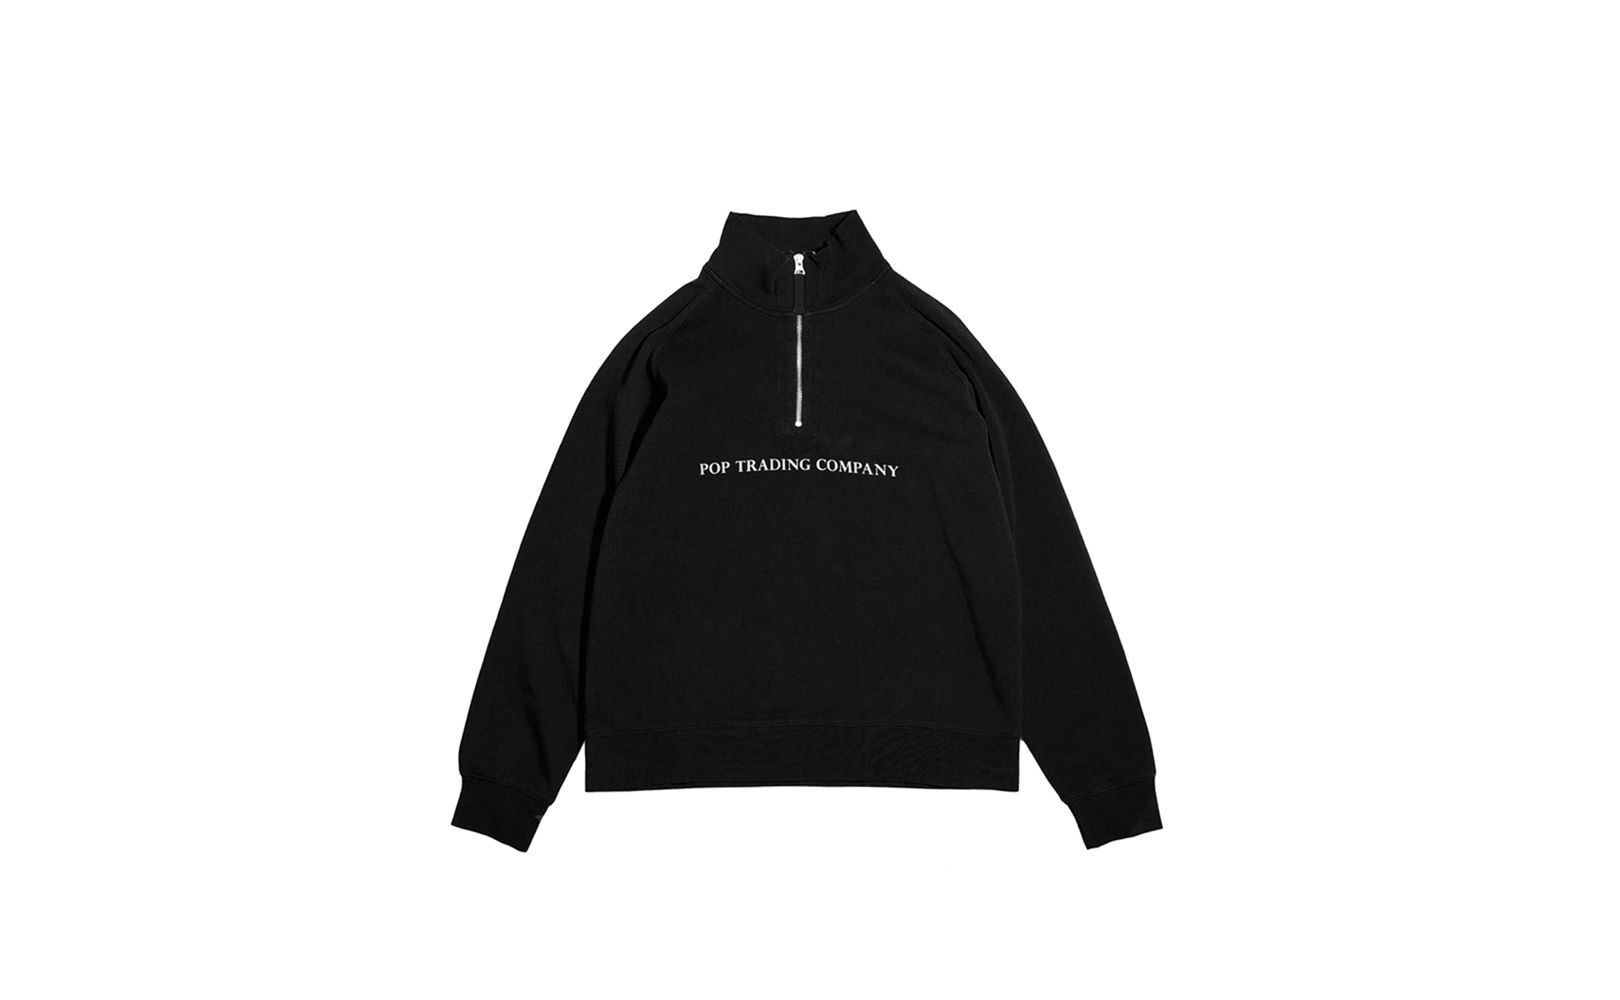 pop-trading-company-aw17-product-mr-porter-exclusive-5-sportswear-half-zip-sweater-black